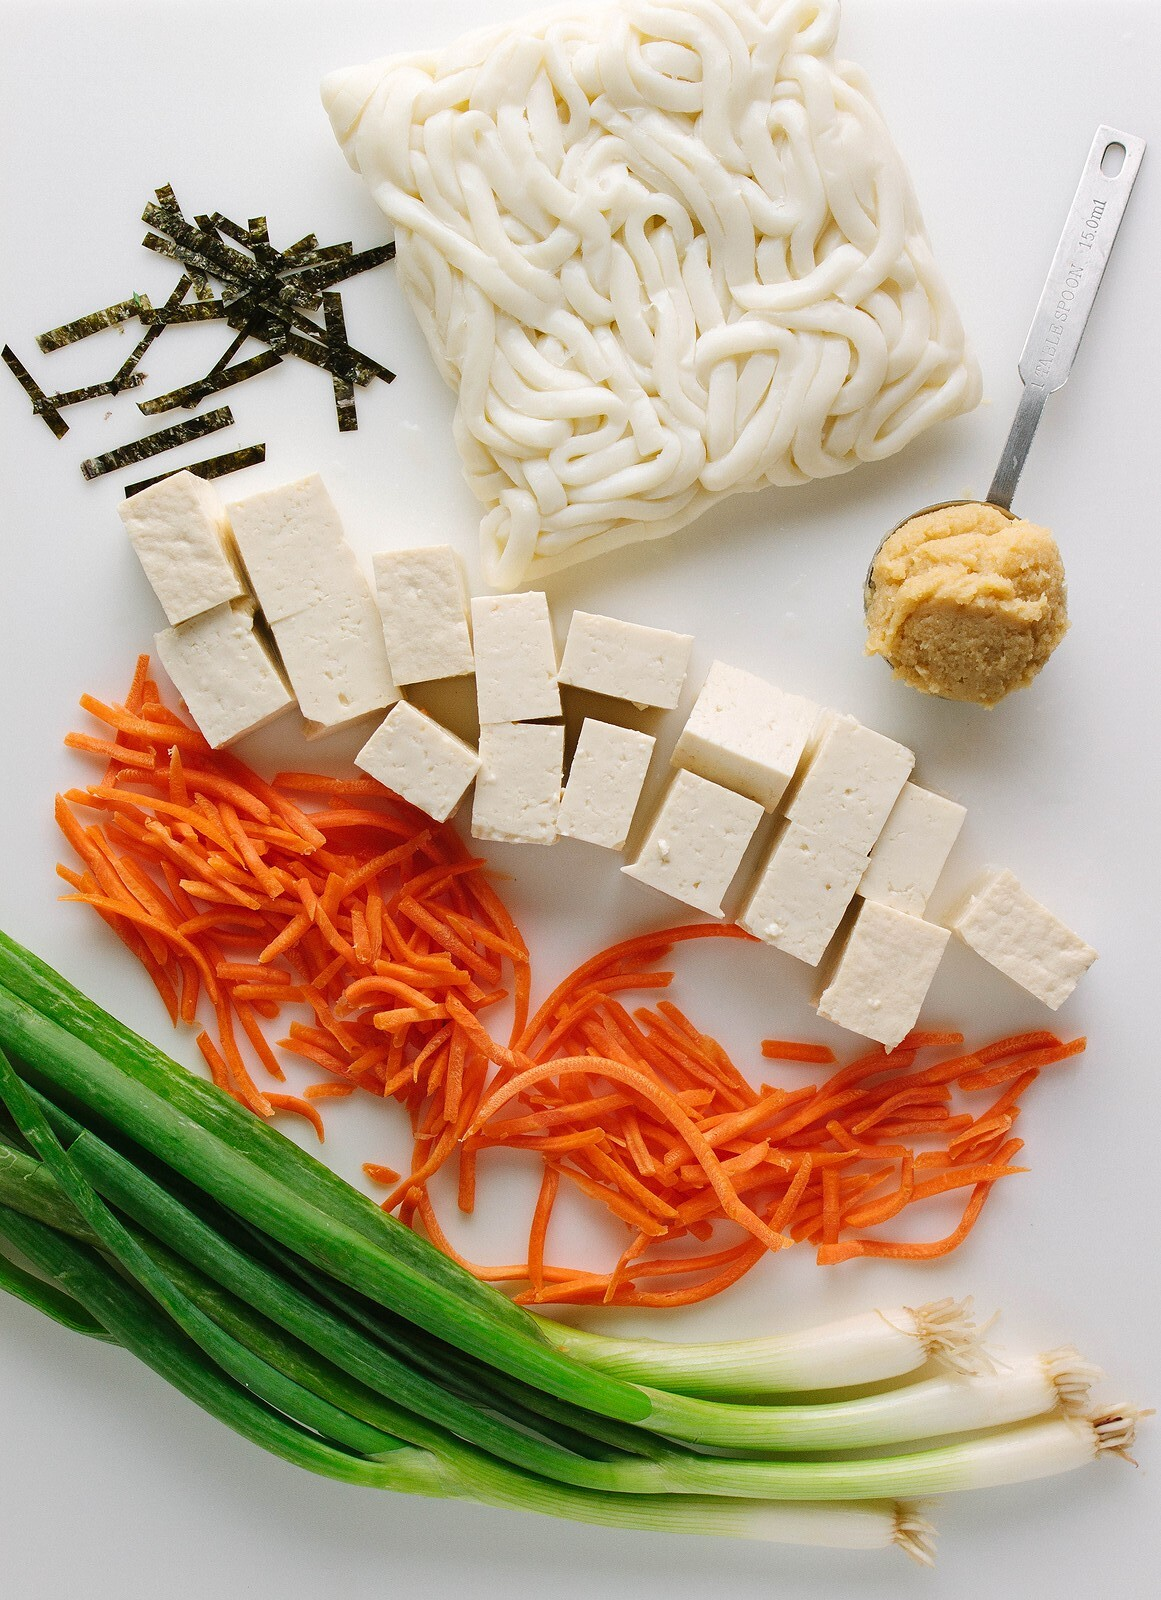 SIMPLE TOFU MISO NOODLE SOUP: Ingredients